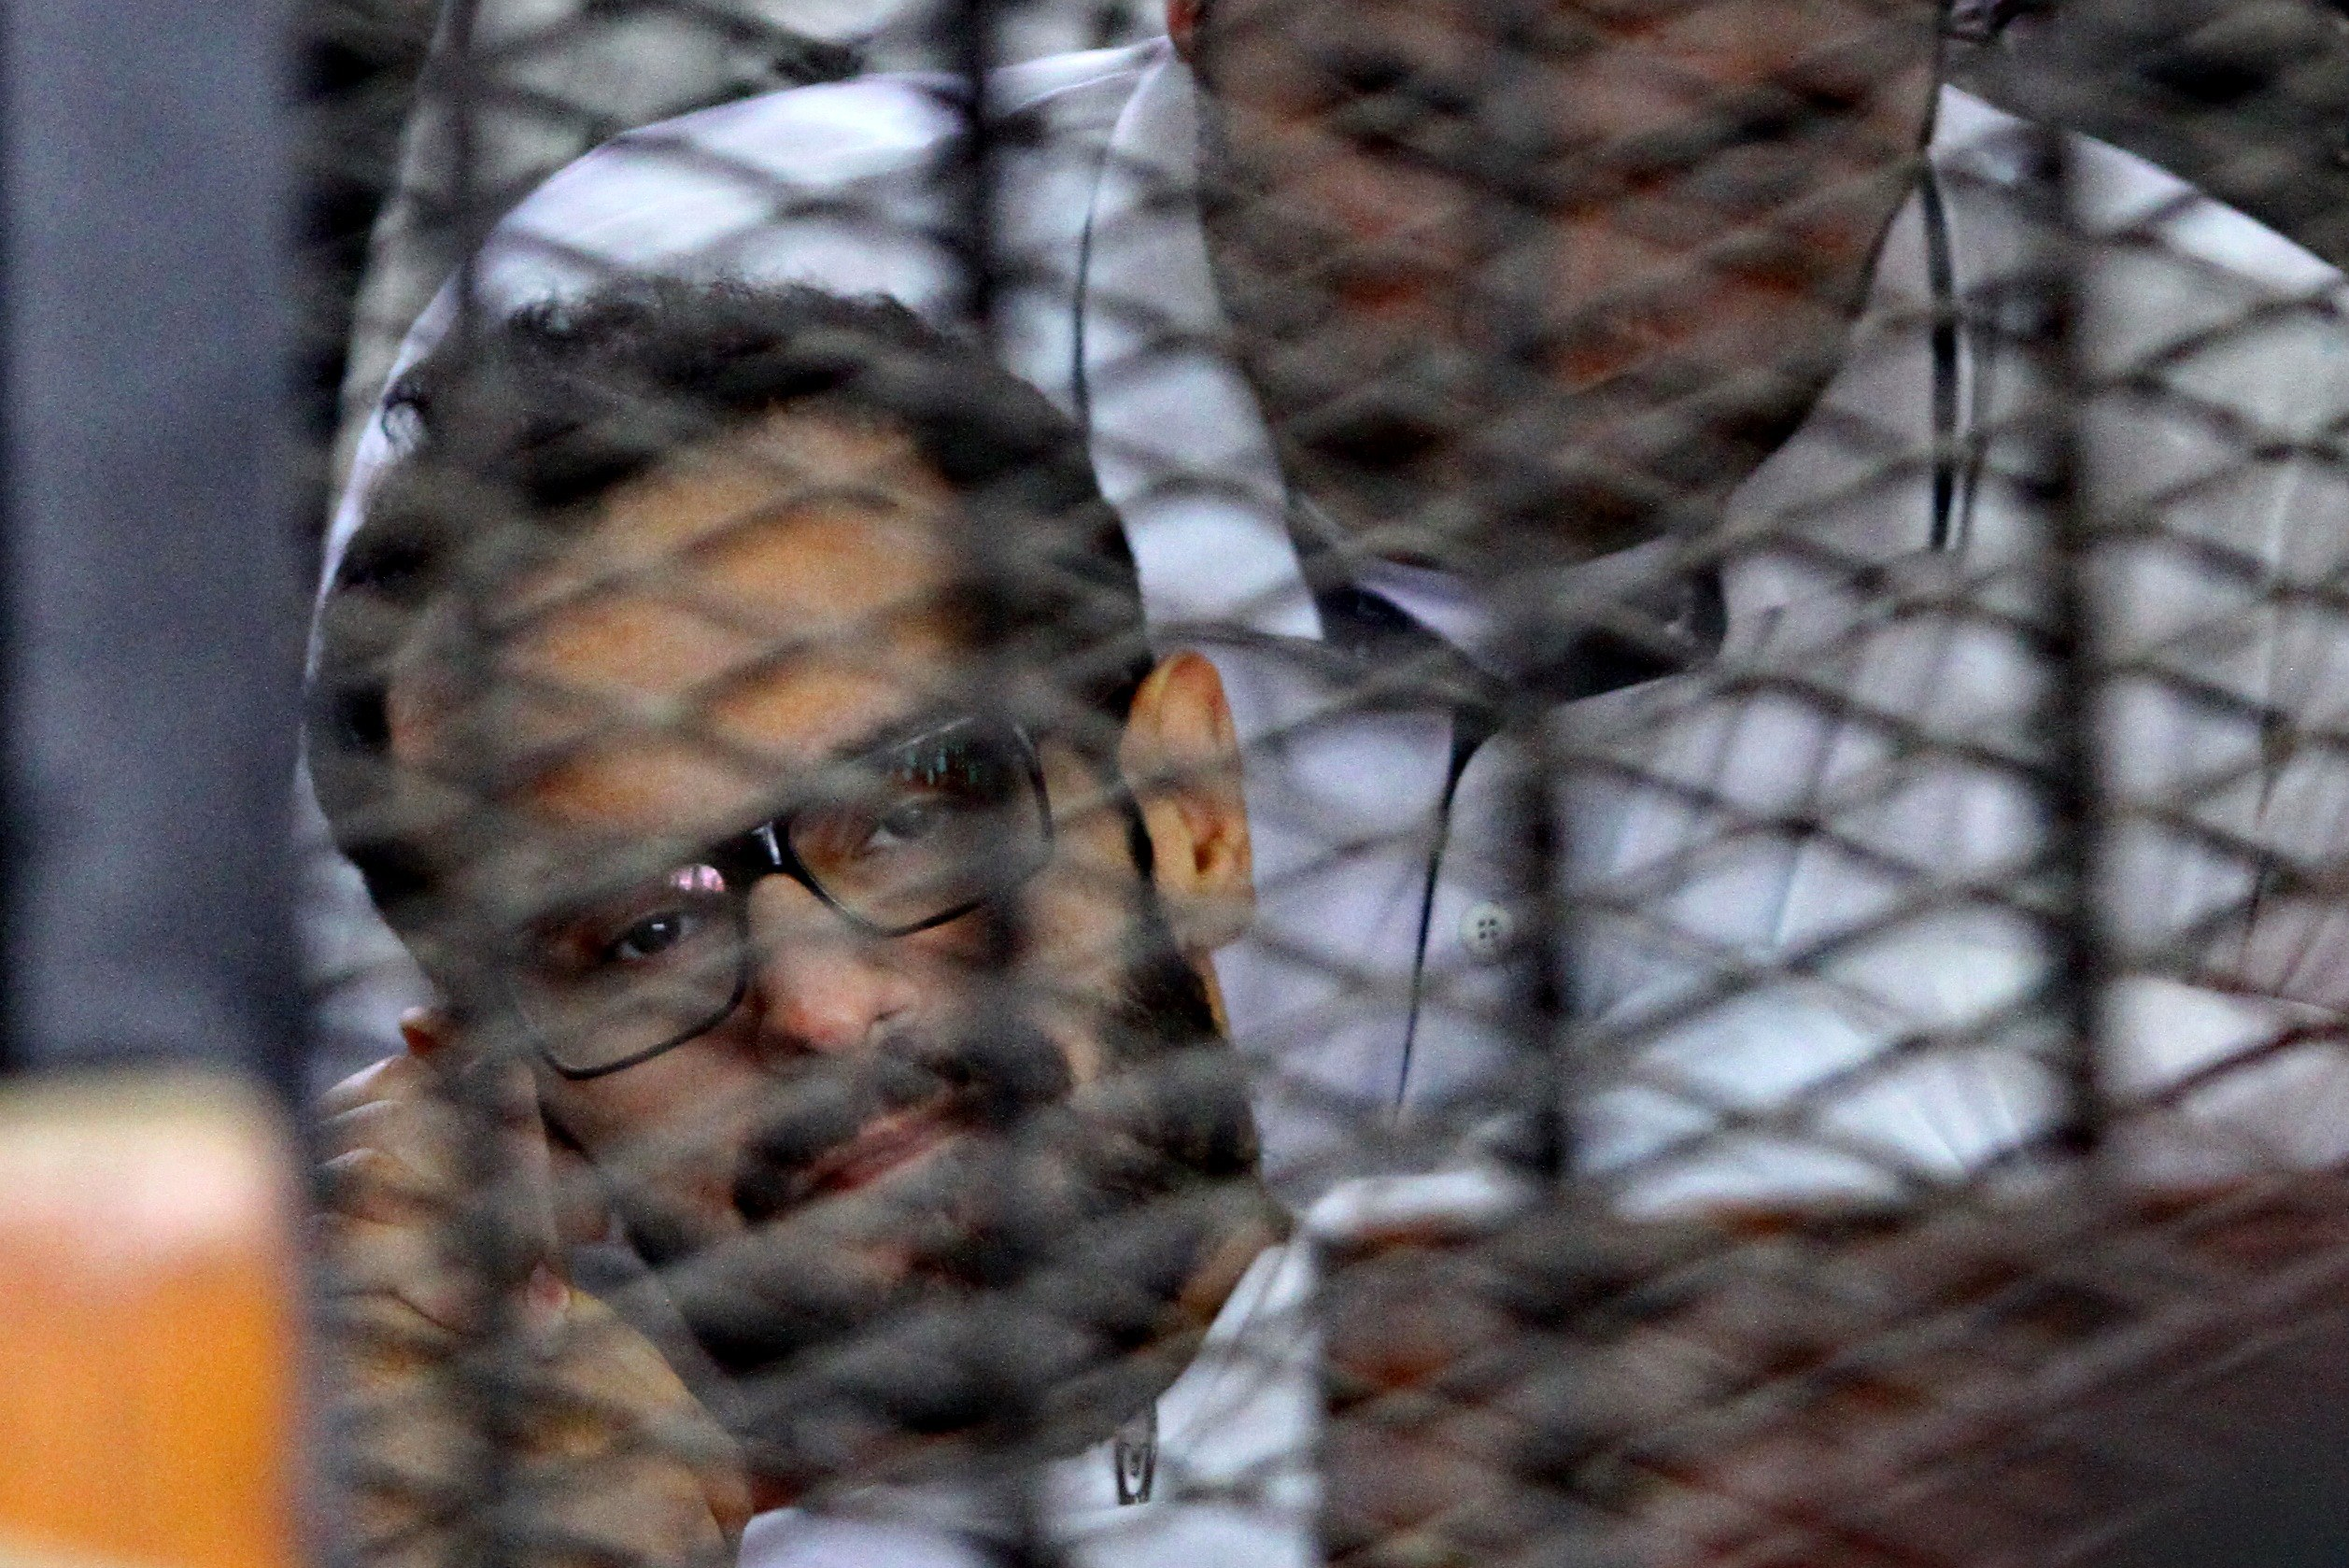 The Cairo Court has postponed hunger striker Mohamed Soltan's trial, commonly known as the Rabaa Operations trial, to 11 October (AFP PHOTO / STR)